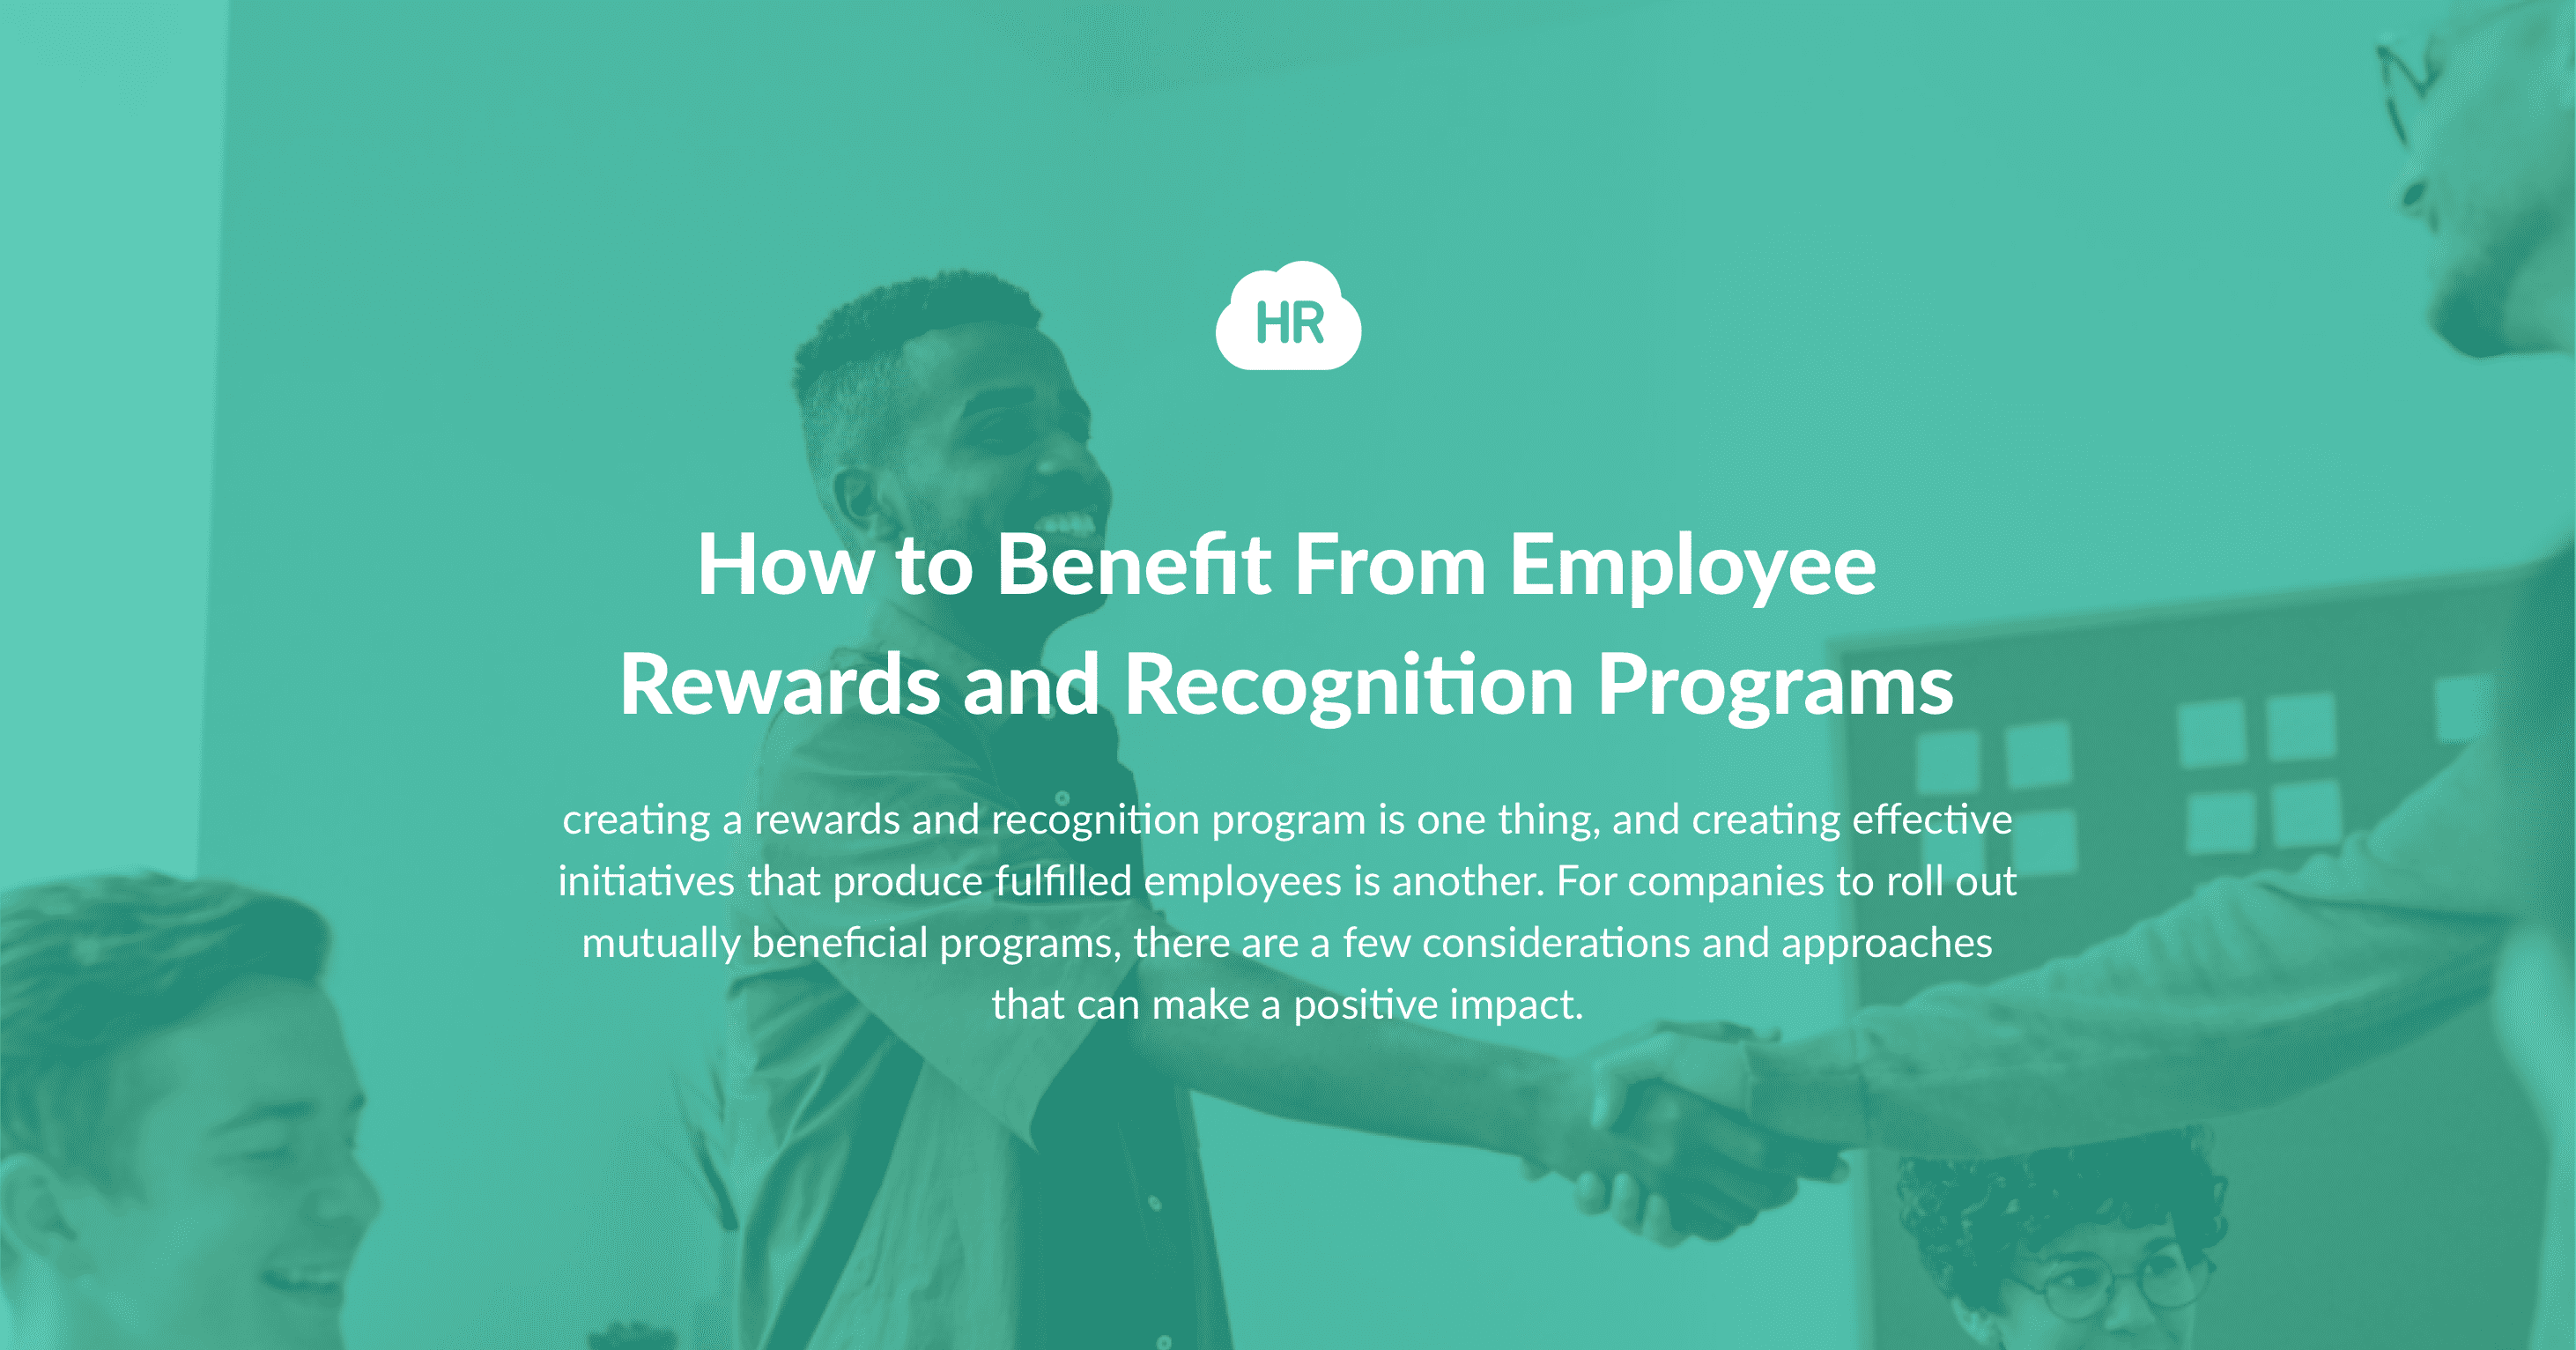 How to Benefit From Employee Rewards and Recognition Programs